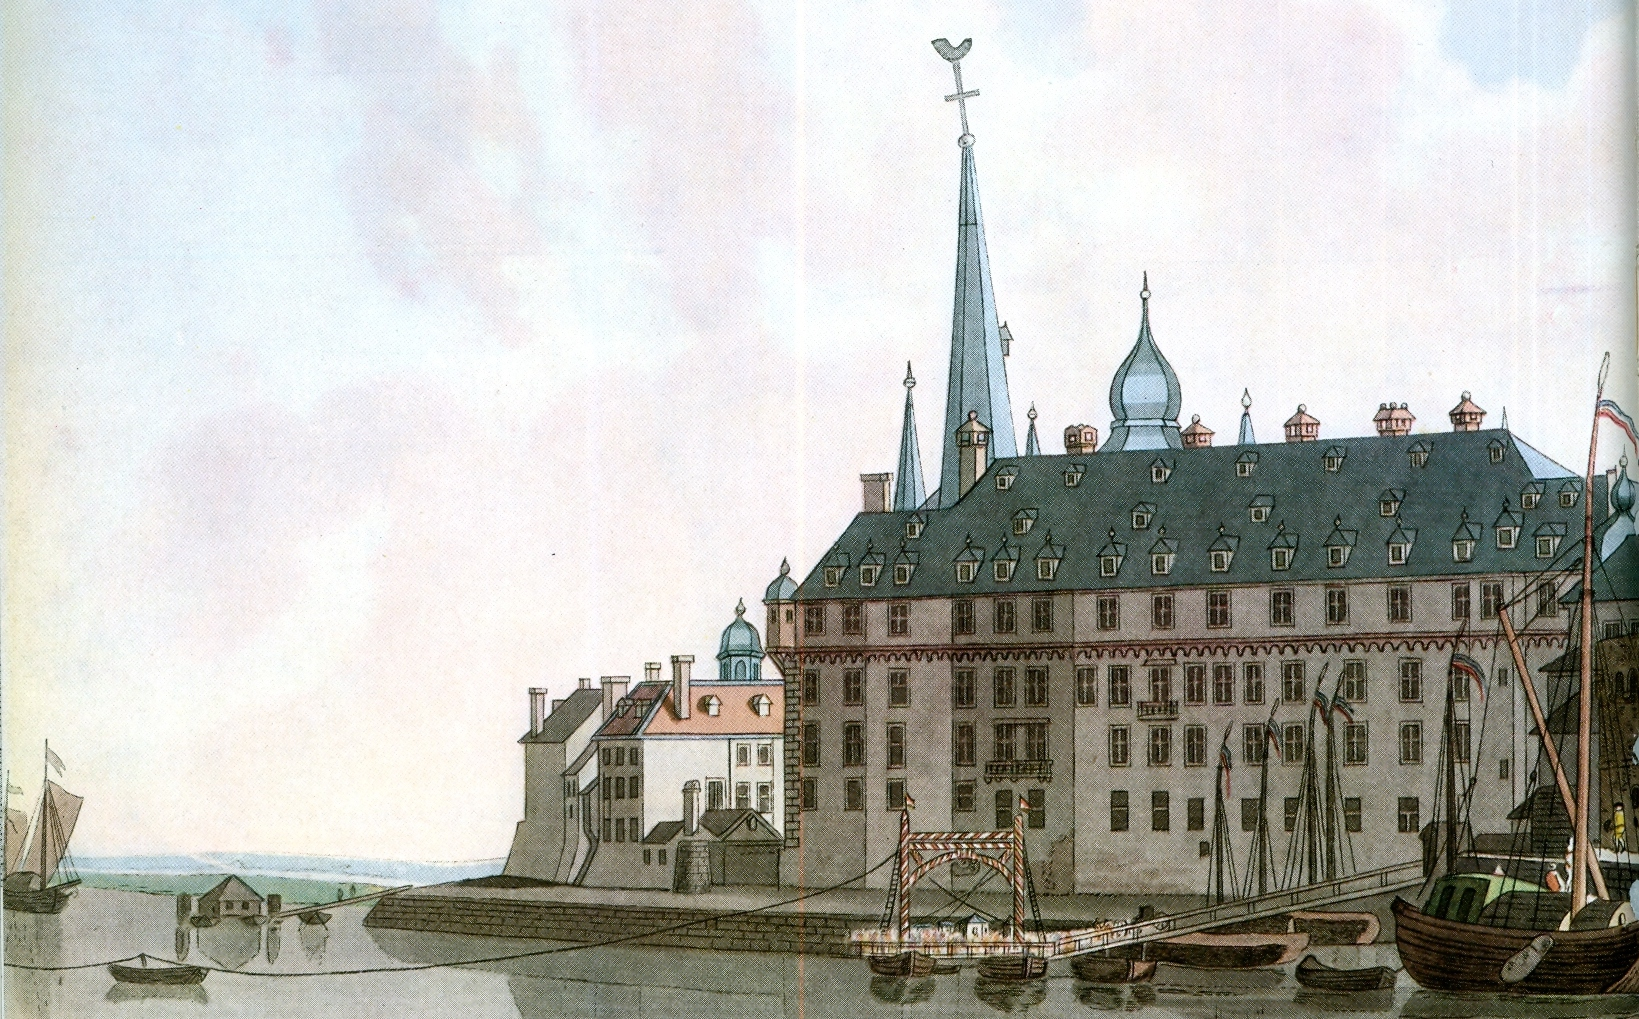 The City Palace of Dusseldorf, birthplace of Anne of Cleves